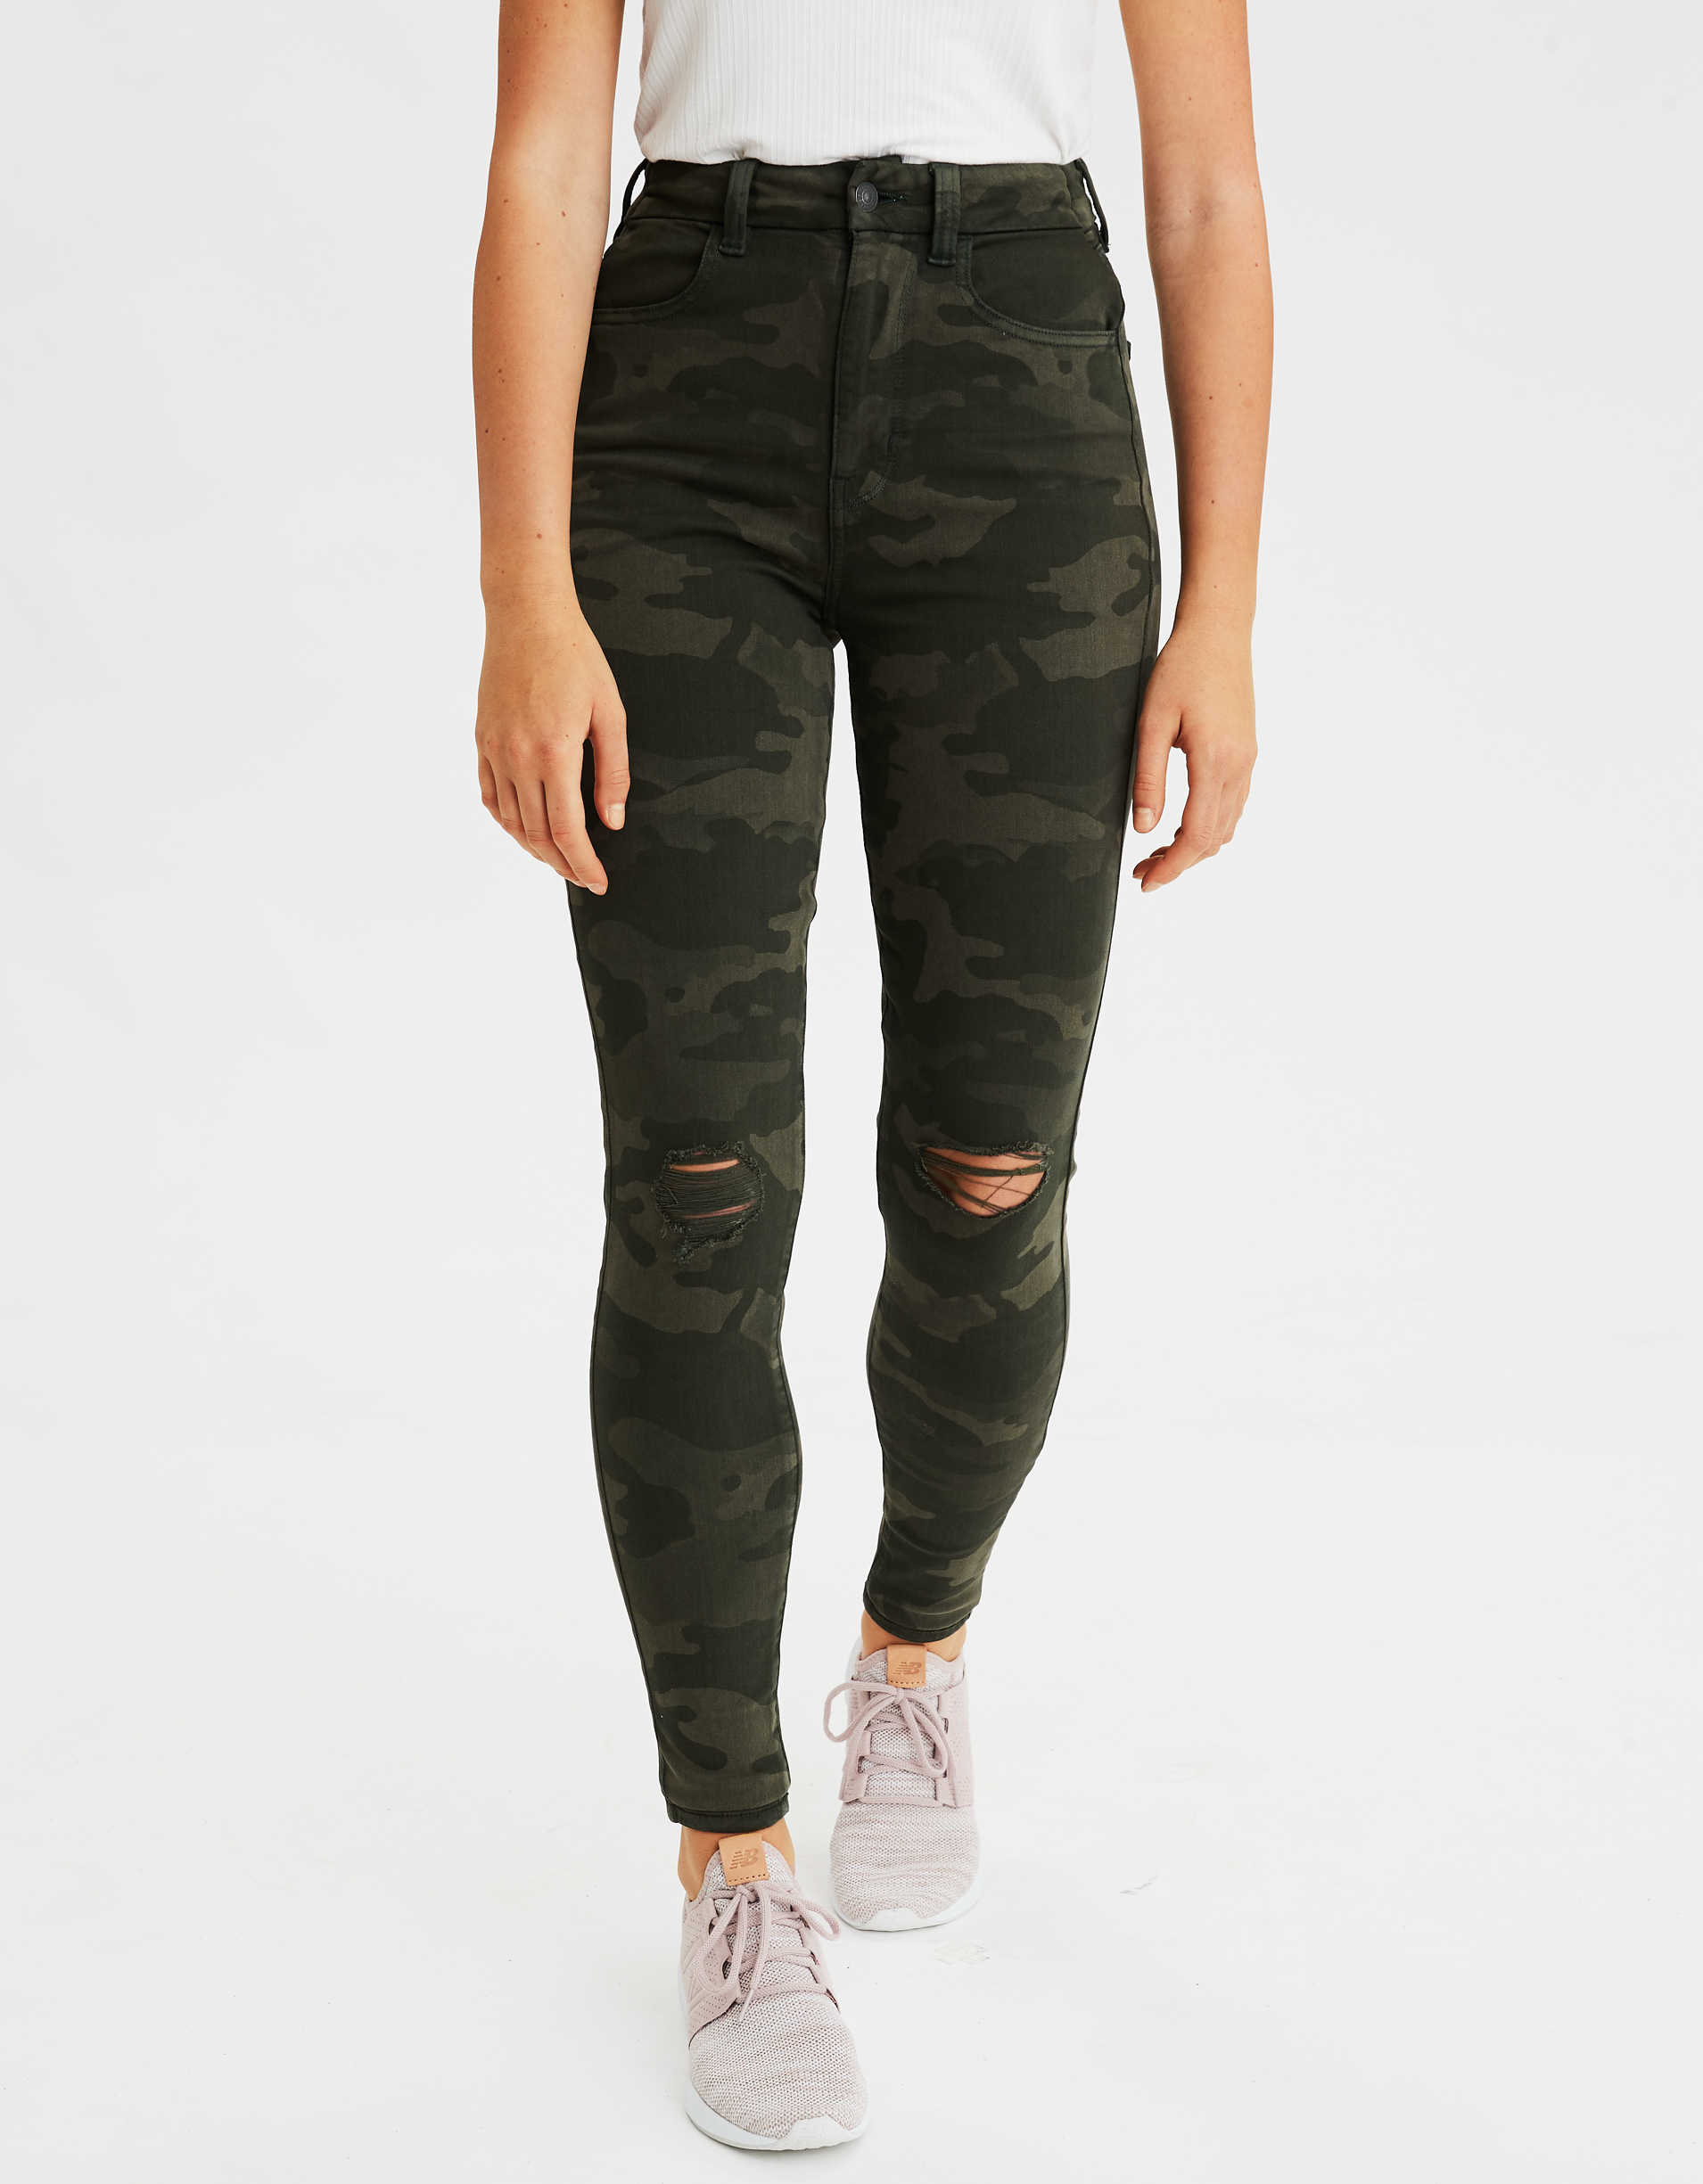 AE Curvy Super High-Waisted Jegging